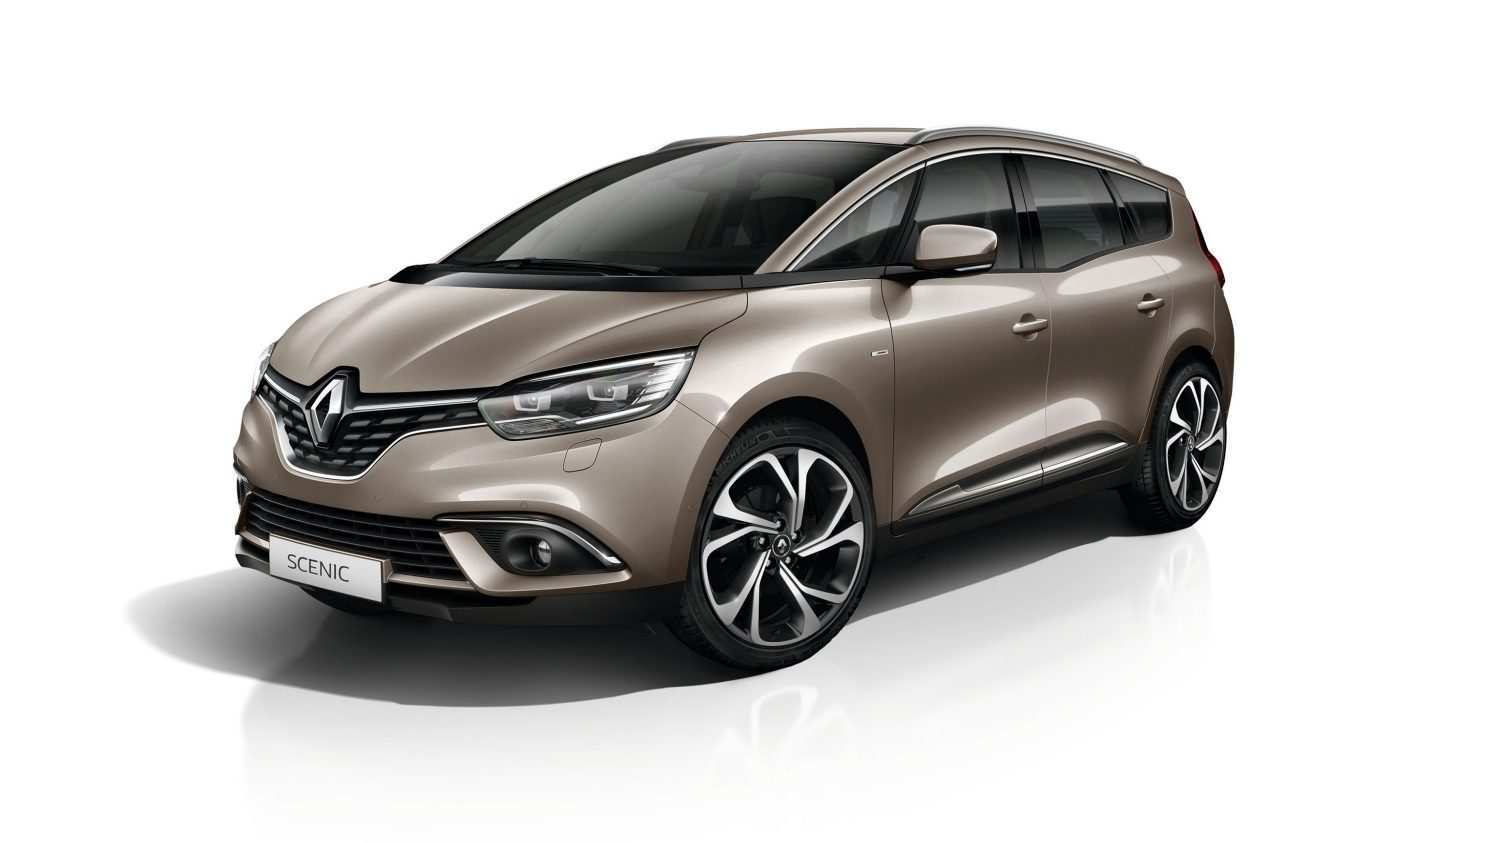 75 The Best Renault Scenic 2019 Style